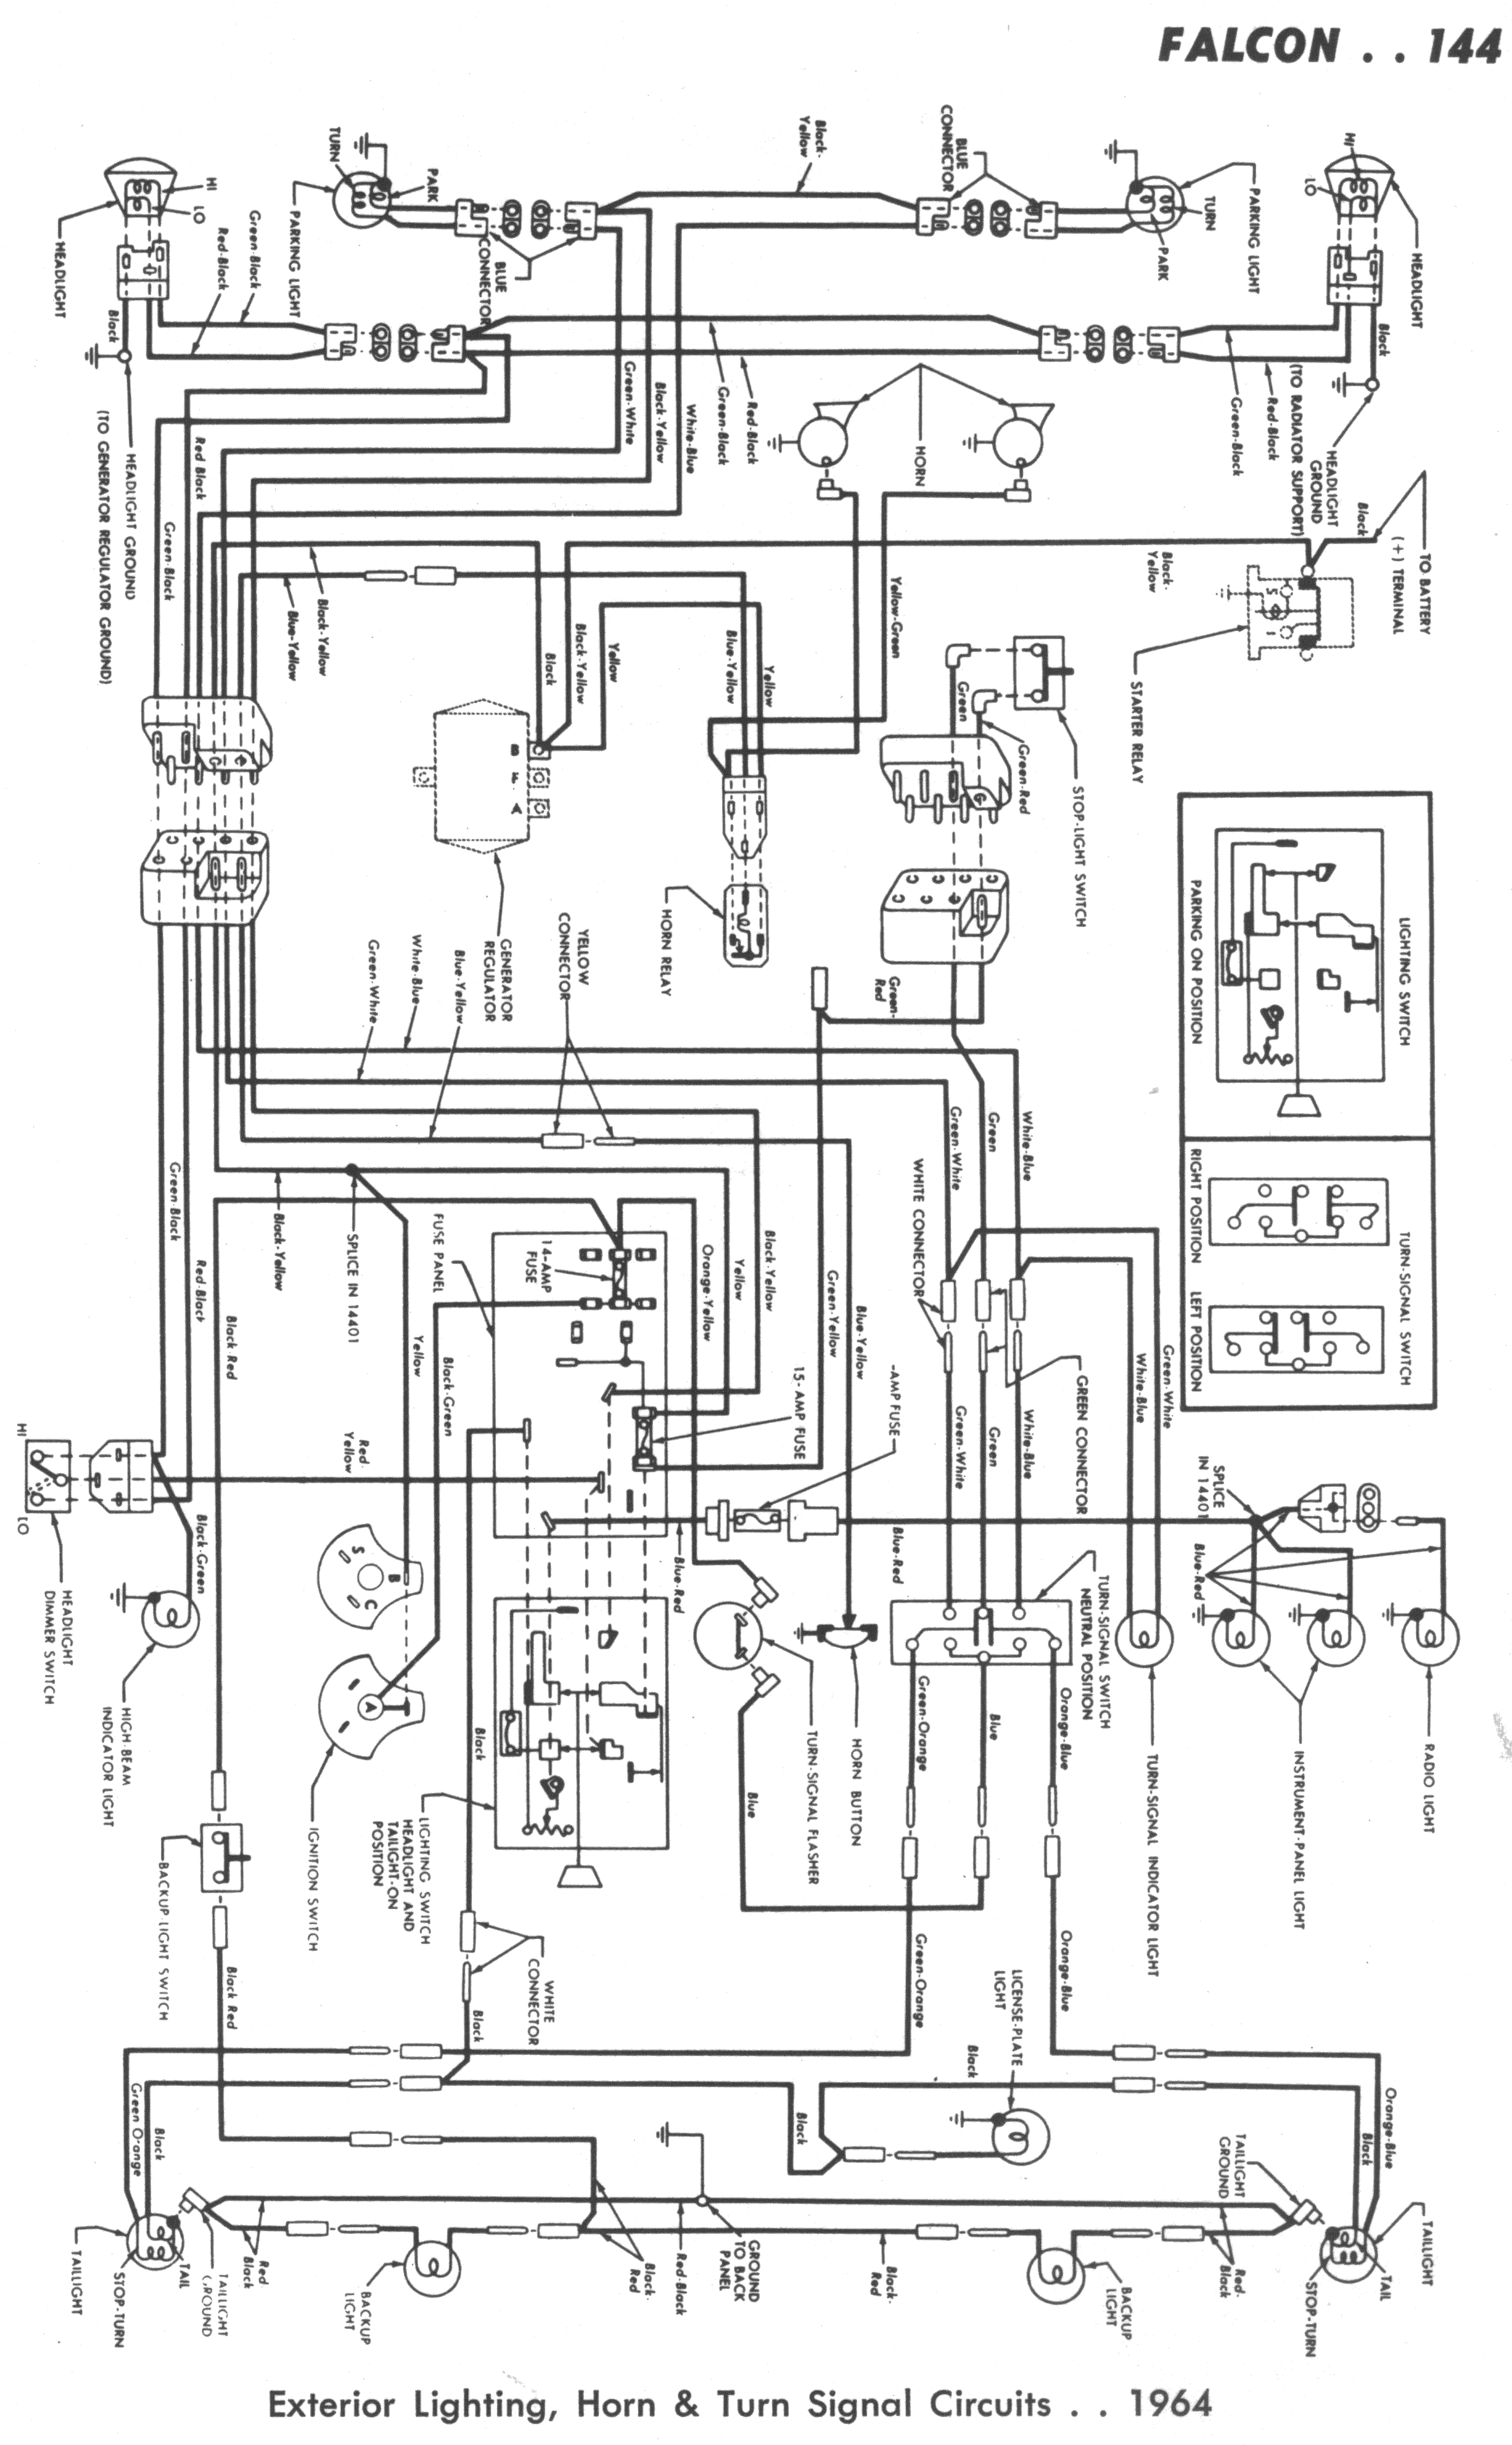 Ford Ranchero Wiring Diagrams Archive Of Automotive Diagram 1966 Thunderbird Auto Falcon Rh Falconfaq Dyndns Org 1957